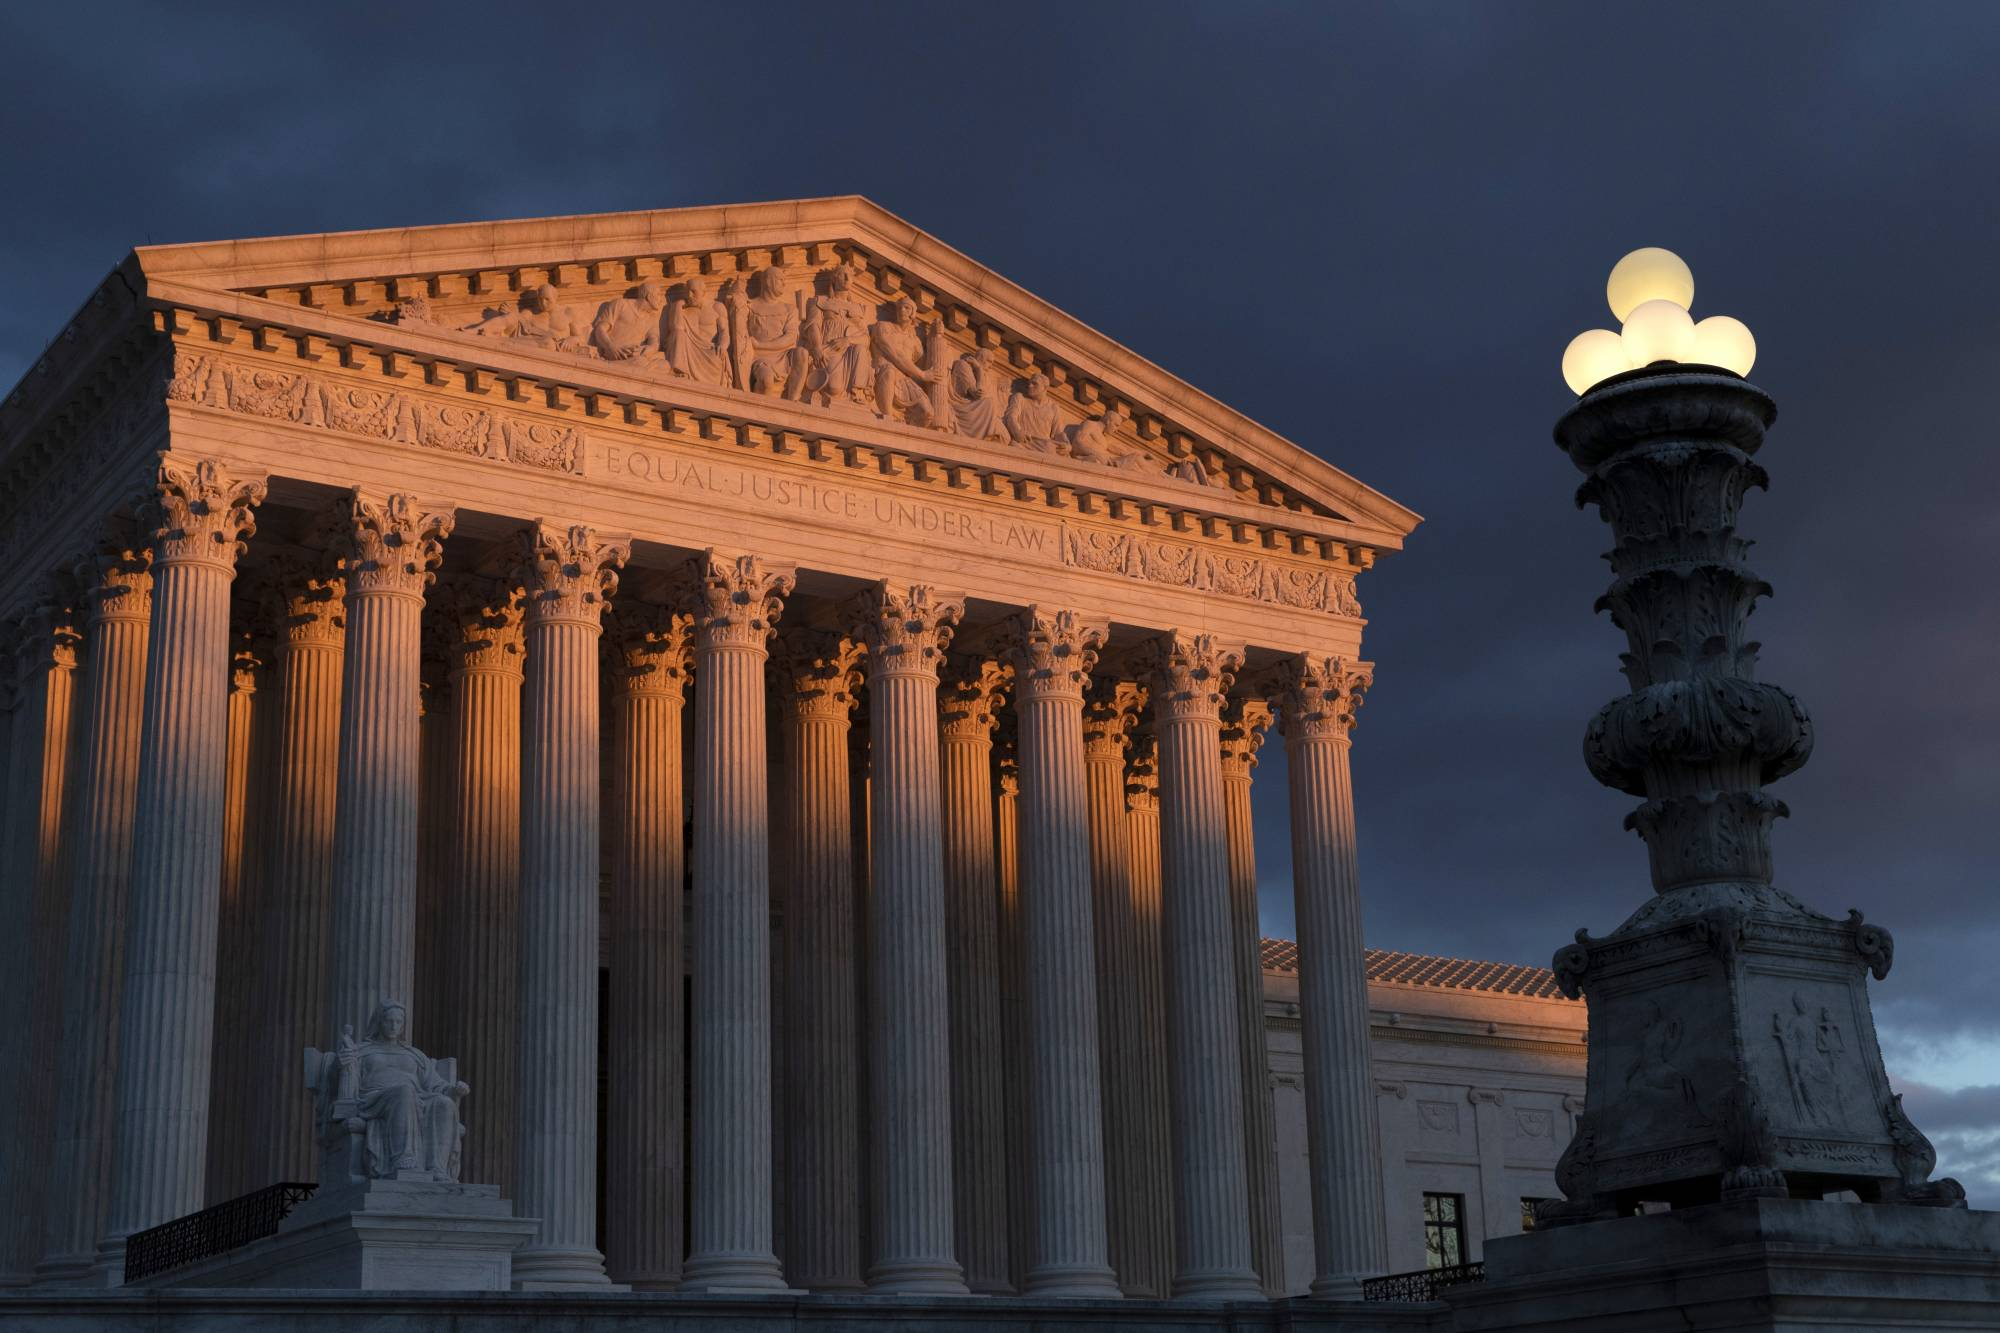 "FILE - In this Jan. 24, 2019 file photo, the Supreme Court is seen at sunset in Washington. The Supreme Court has ruled that insurance companies can collect $12 billion from the federal government to cover their losses in the early years of the health care law championed by President Barack Obama. The justices voted 8-1 Monday in holding that insurers are entitled to the money under a provision of the ""Obamacare"" health law that promised the companies a financial cushion for losses they might incur by selling coverage to people in the marketplaces created by the health care law. (AP Photo/J. Scott Applewhite)"